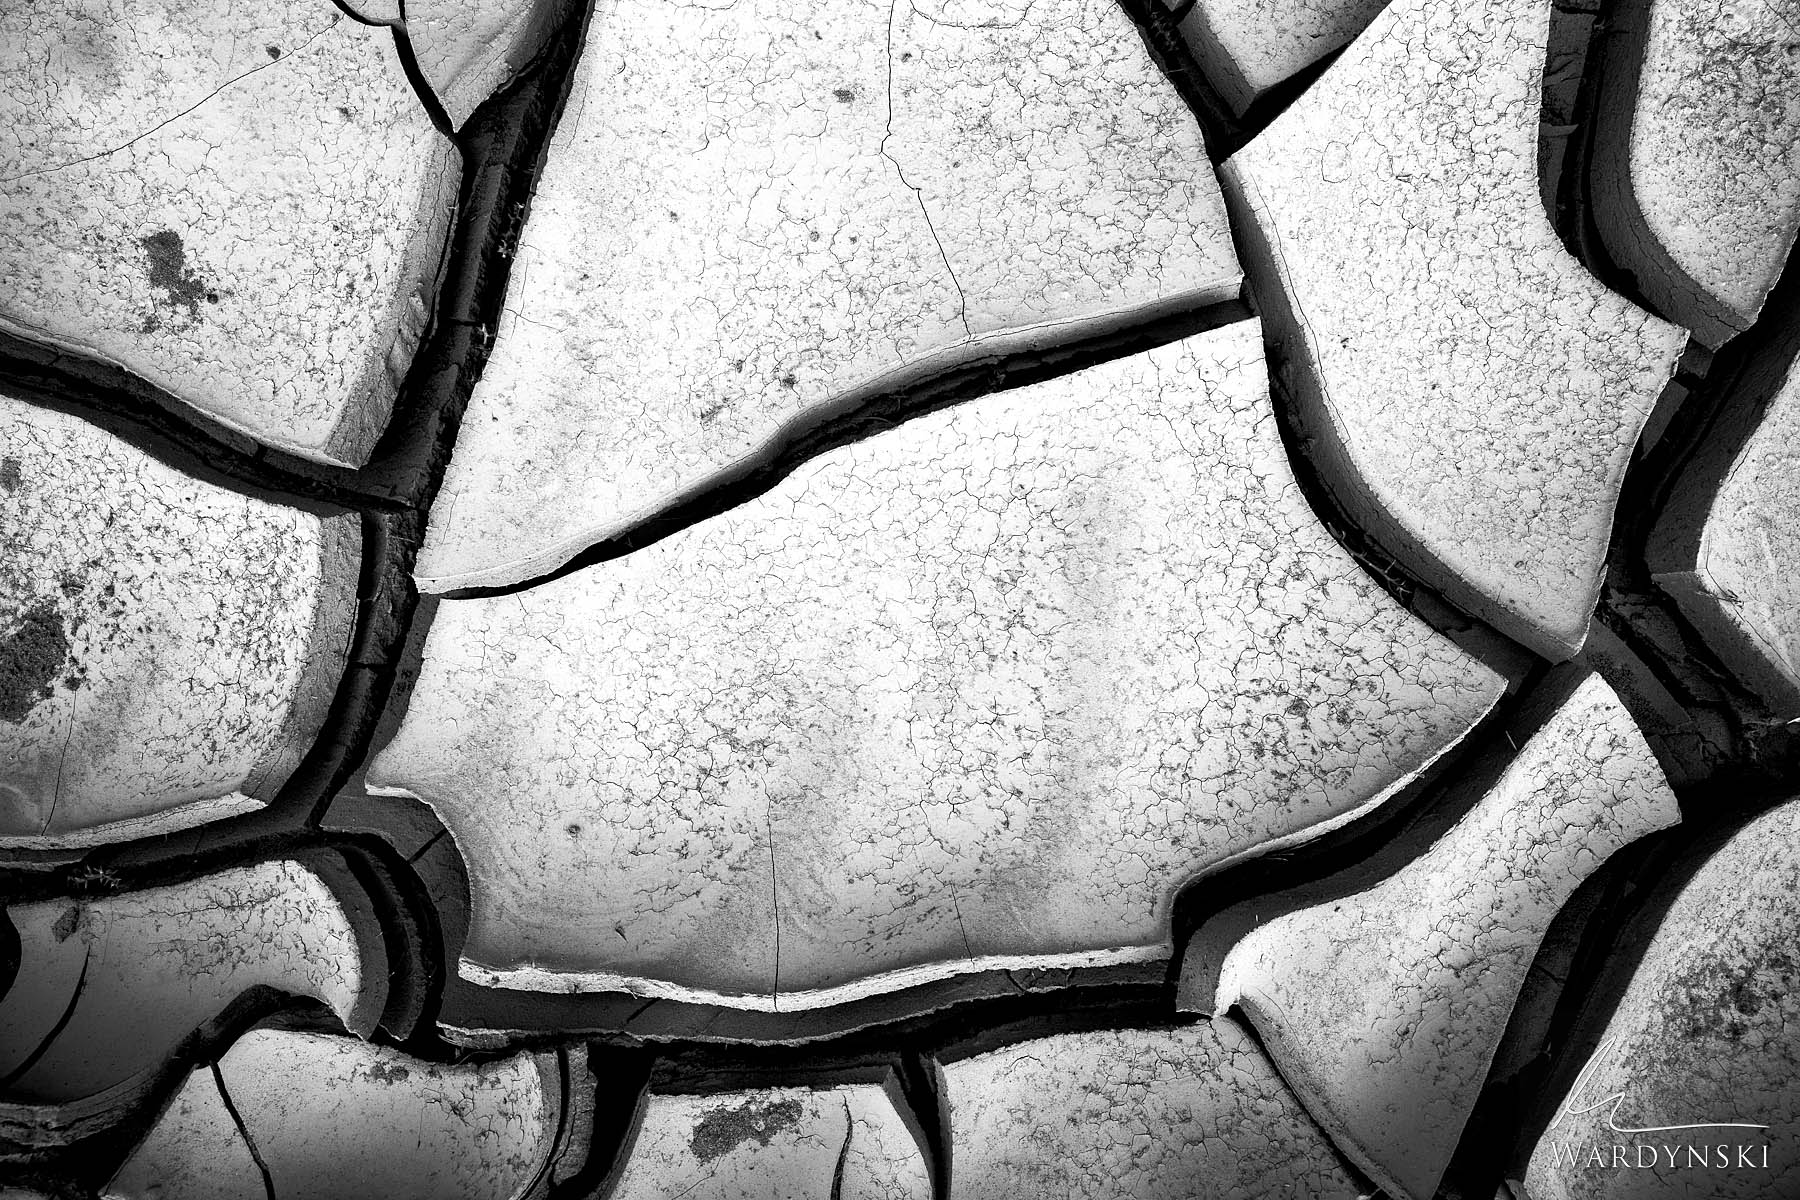 Black and White Fine Art Print | Limited Edition of 50  Dense mud tiles lay on the desert floor of southern Utah. The cracked...